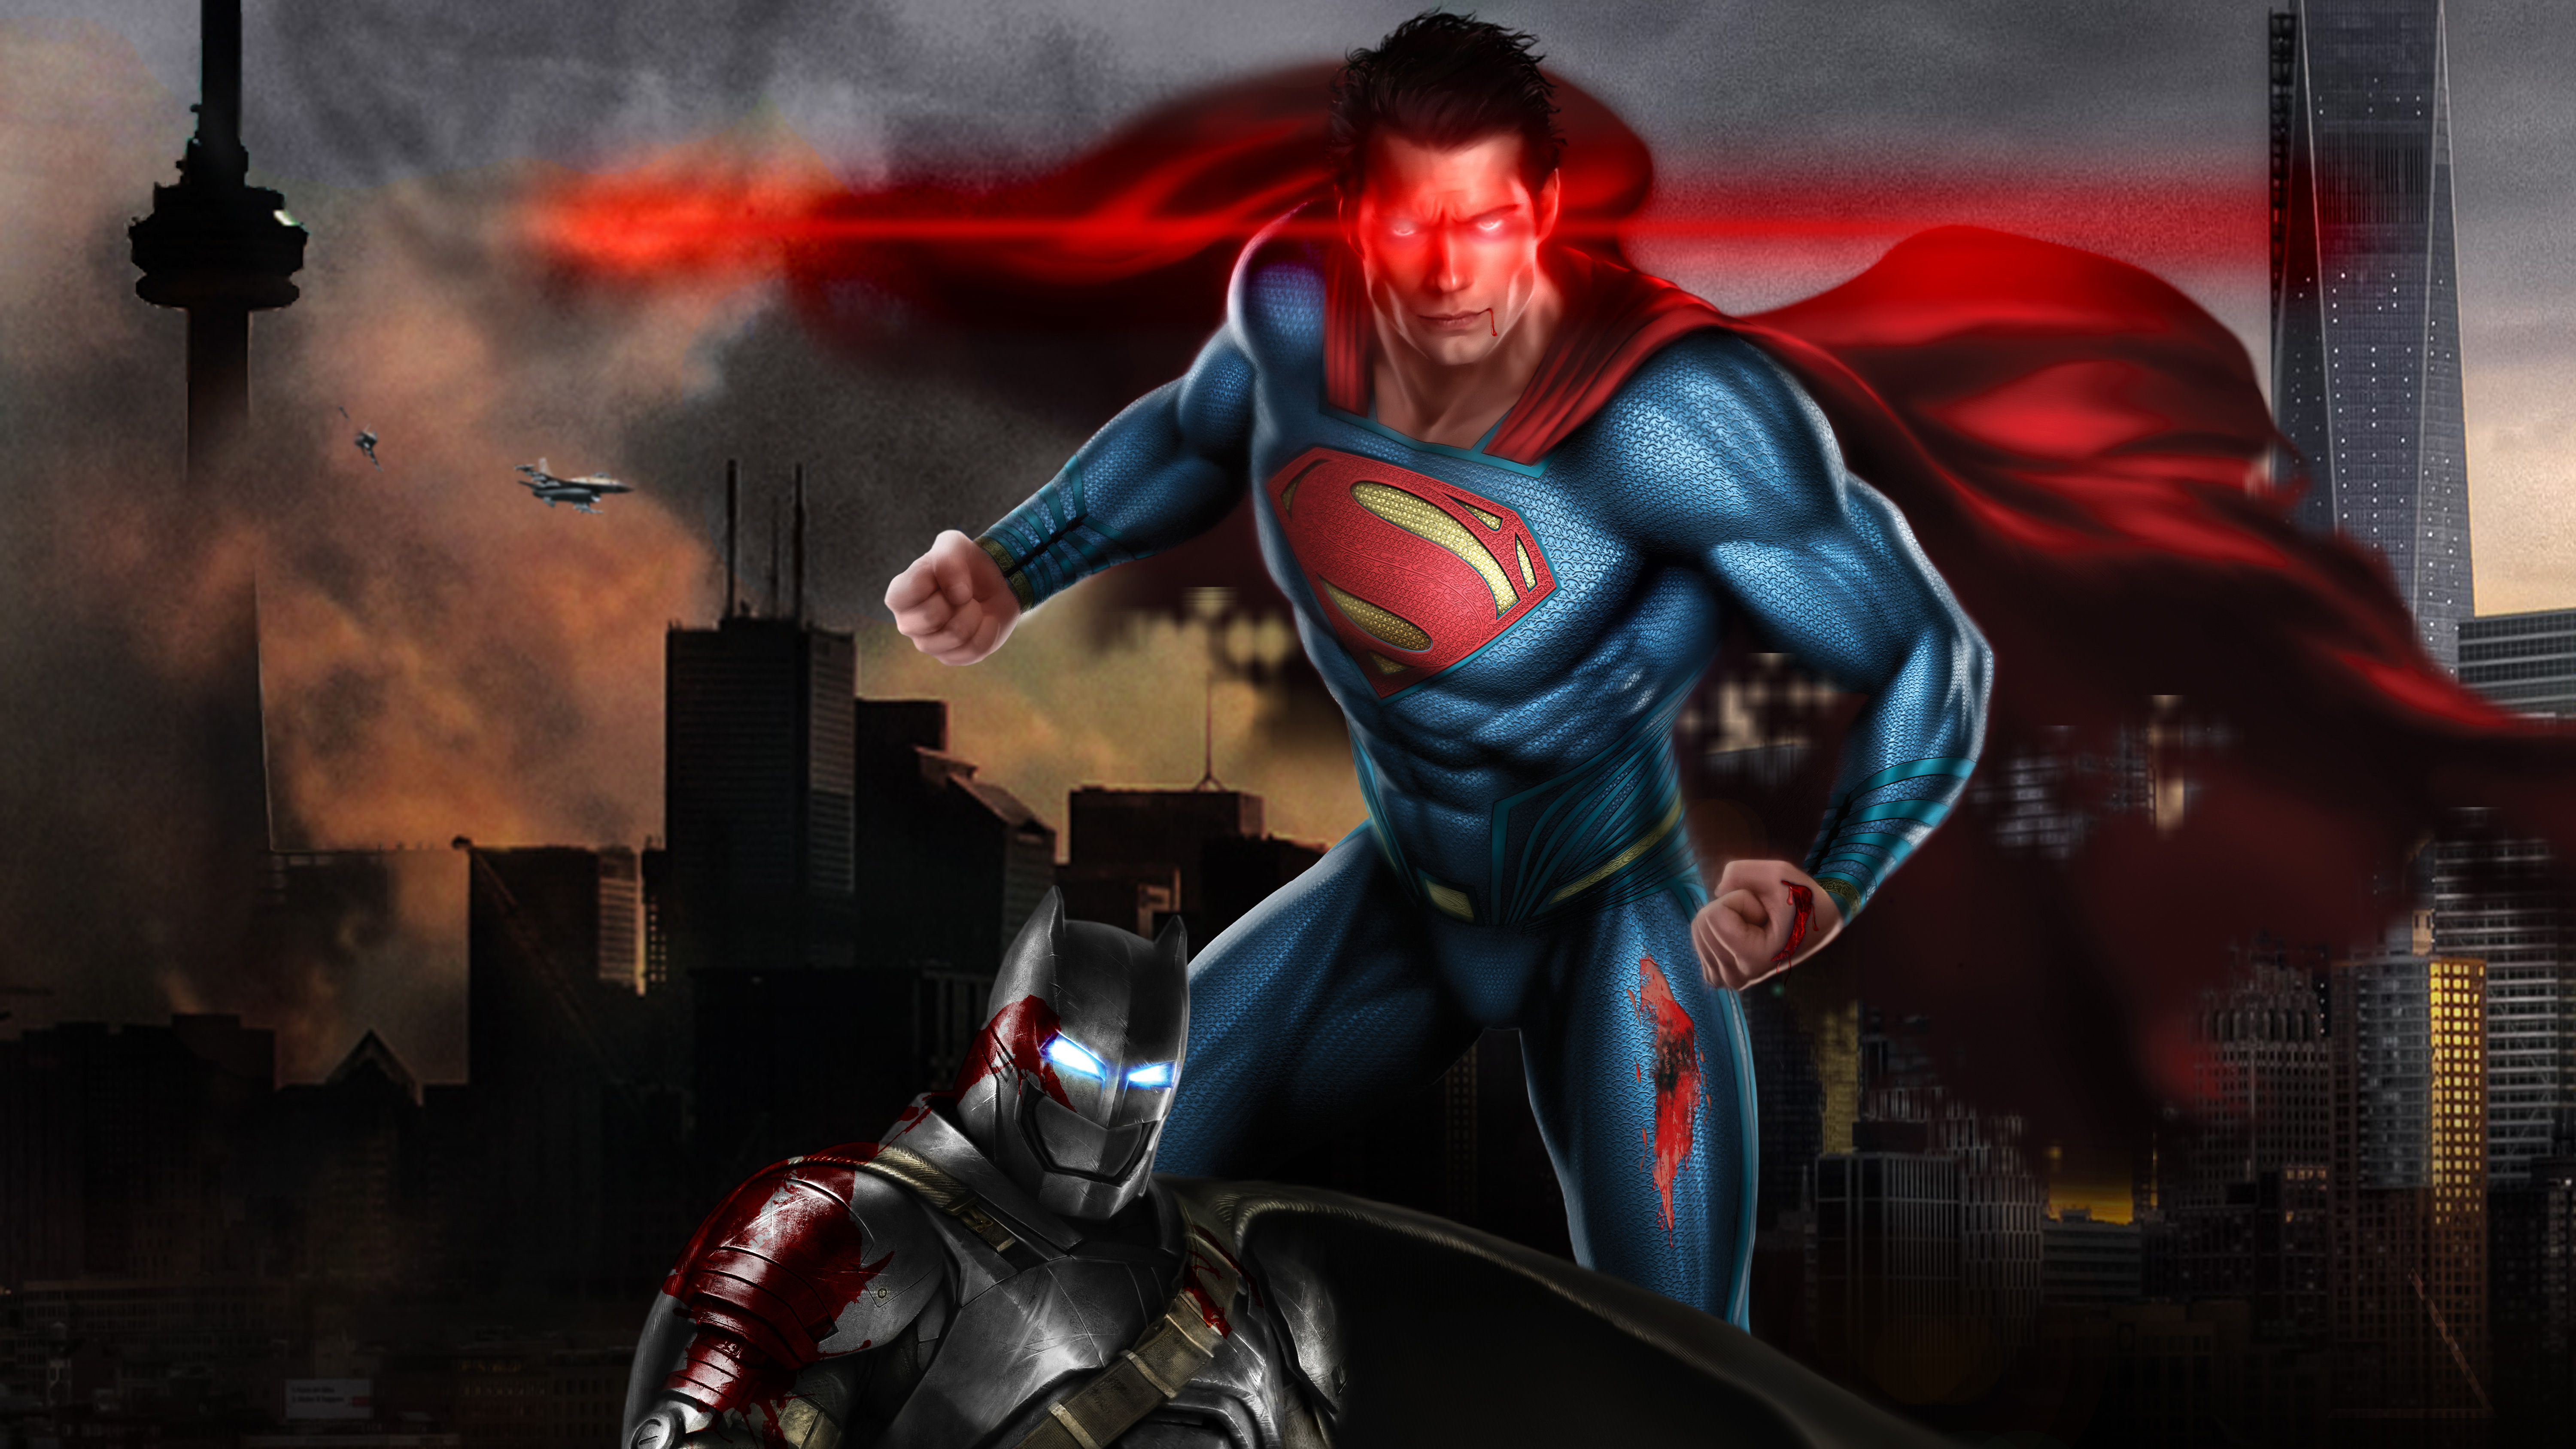 Superman Vs Batman 5k Art, HD Superheroes, 4k Wallpapers ...